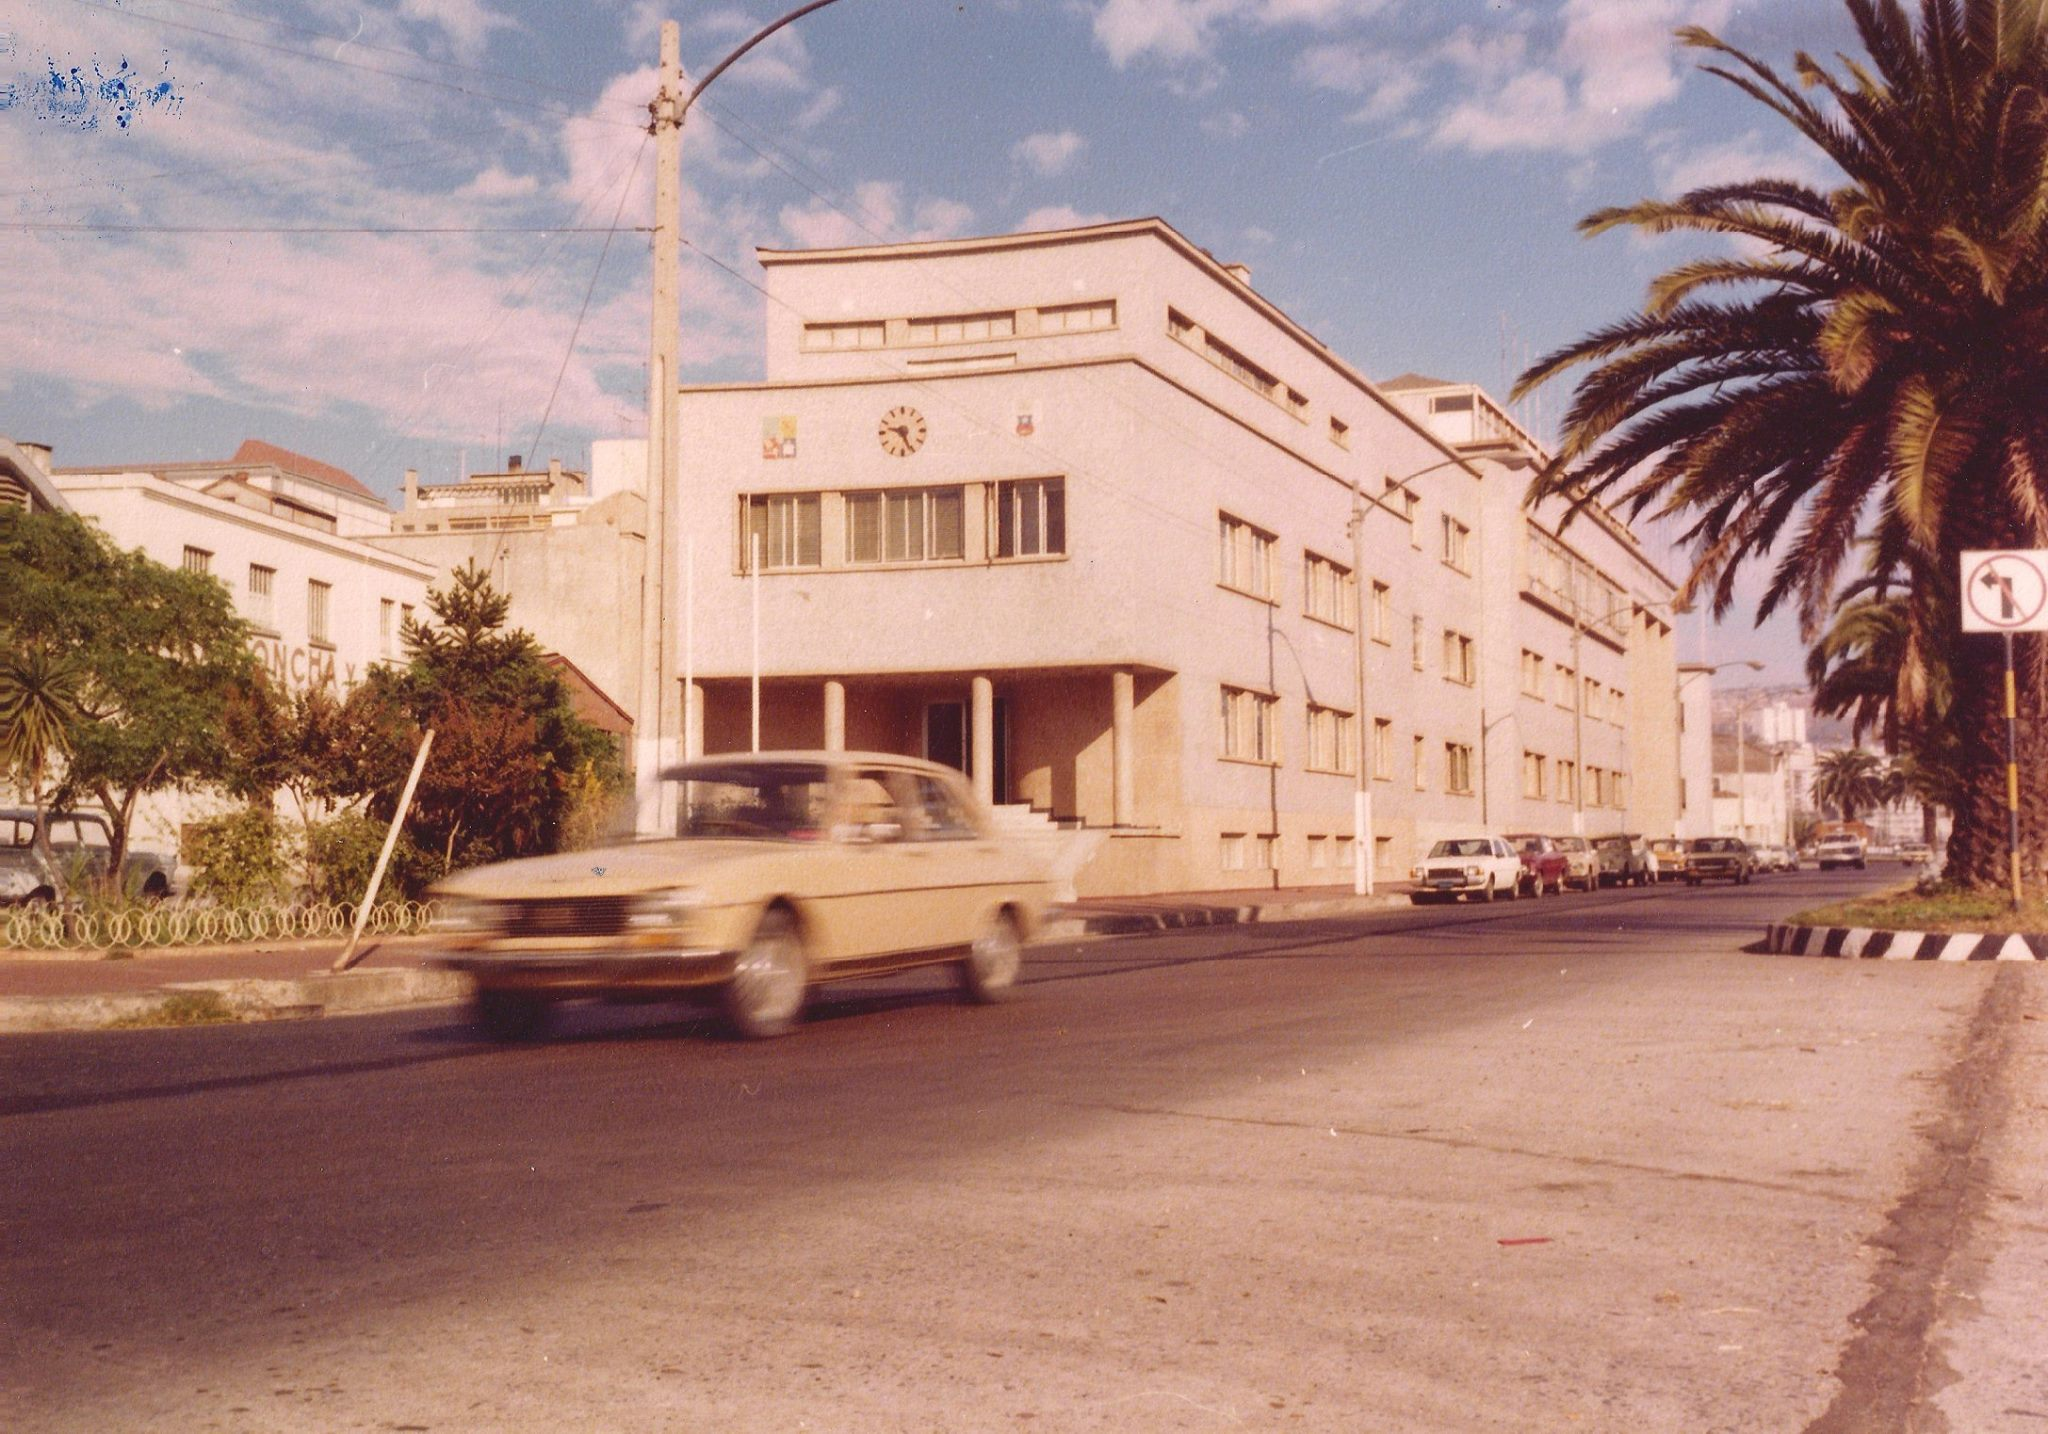 Enterreno - Fotos históricas de chile - fotos antiguas de Chile - Escuela de Derecho de la Universidad de Chile en Valparaíso, 1980